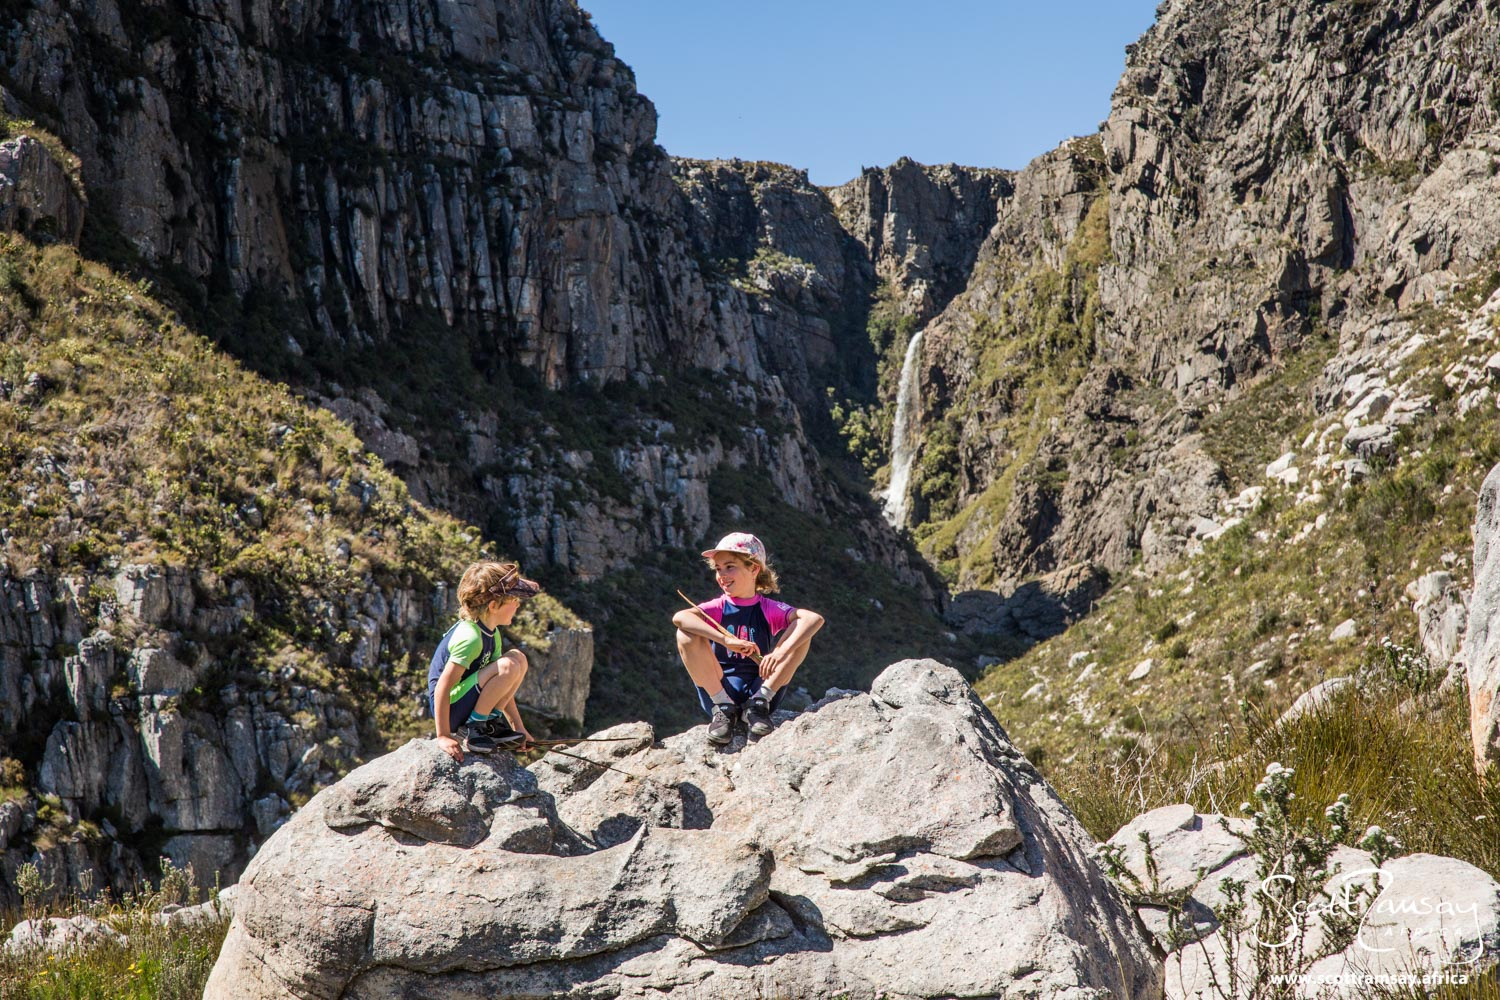 Intrepid young explorers Gabriel and Azara Davis, taking a break in the Bobbejaansrivier gorge in Limietberg